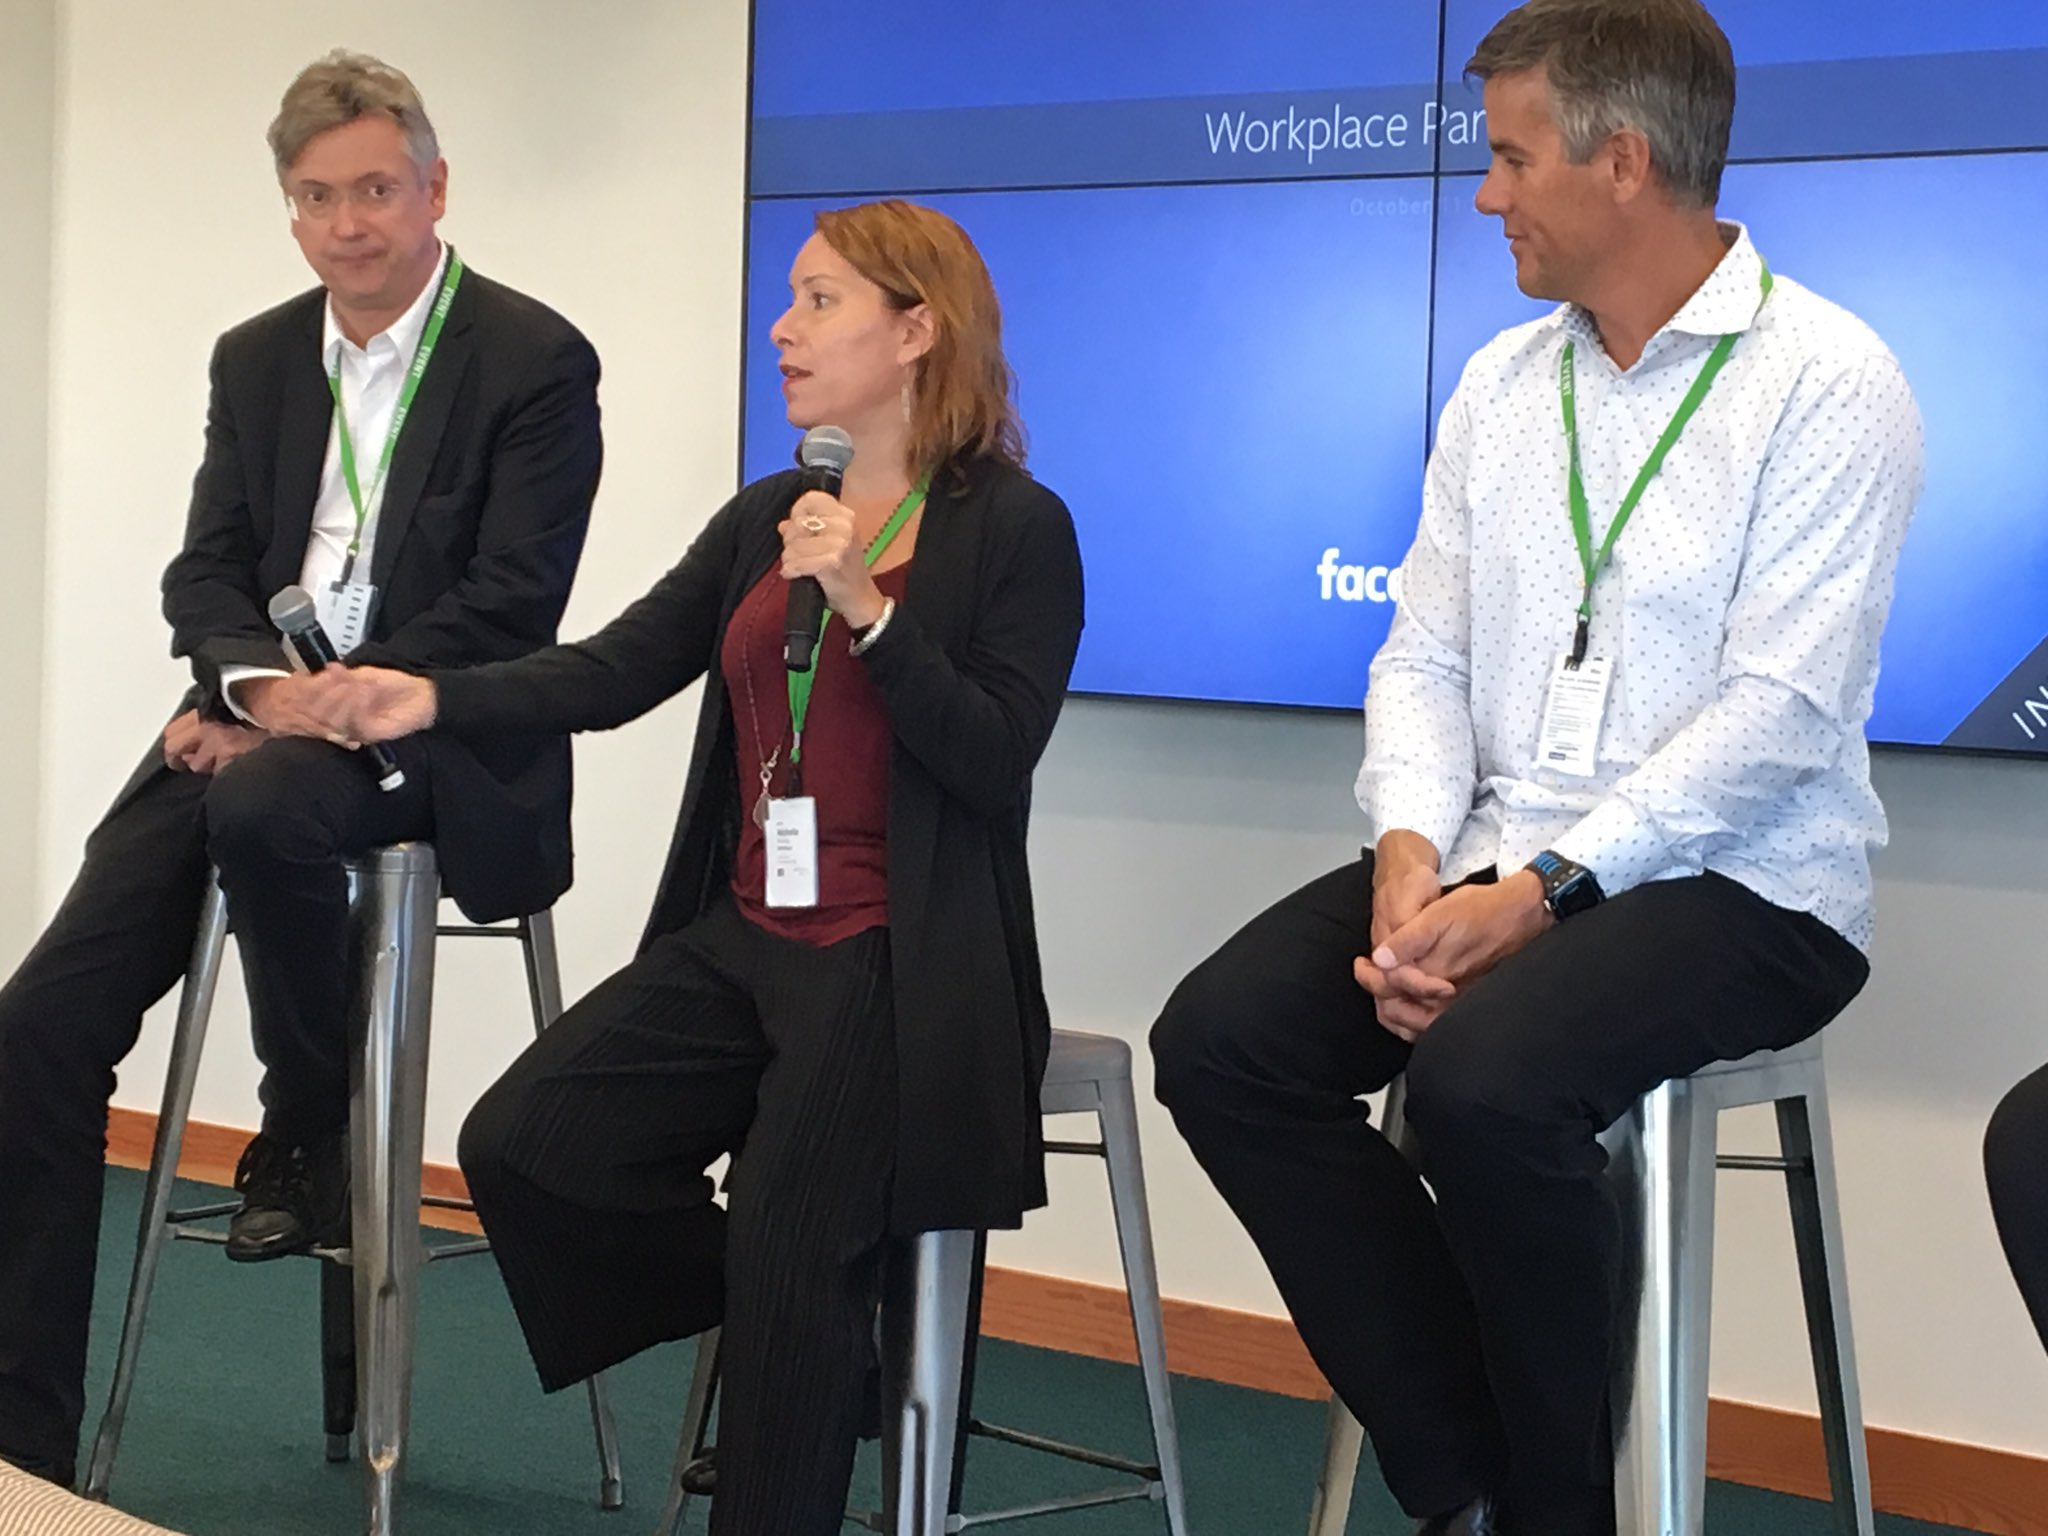 Michelle Mahony shared why understanding human behavior is key to adoption & engagement at the Workplace by Facebook Partner Q&A in London.